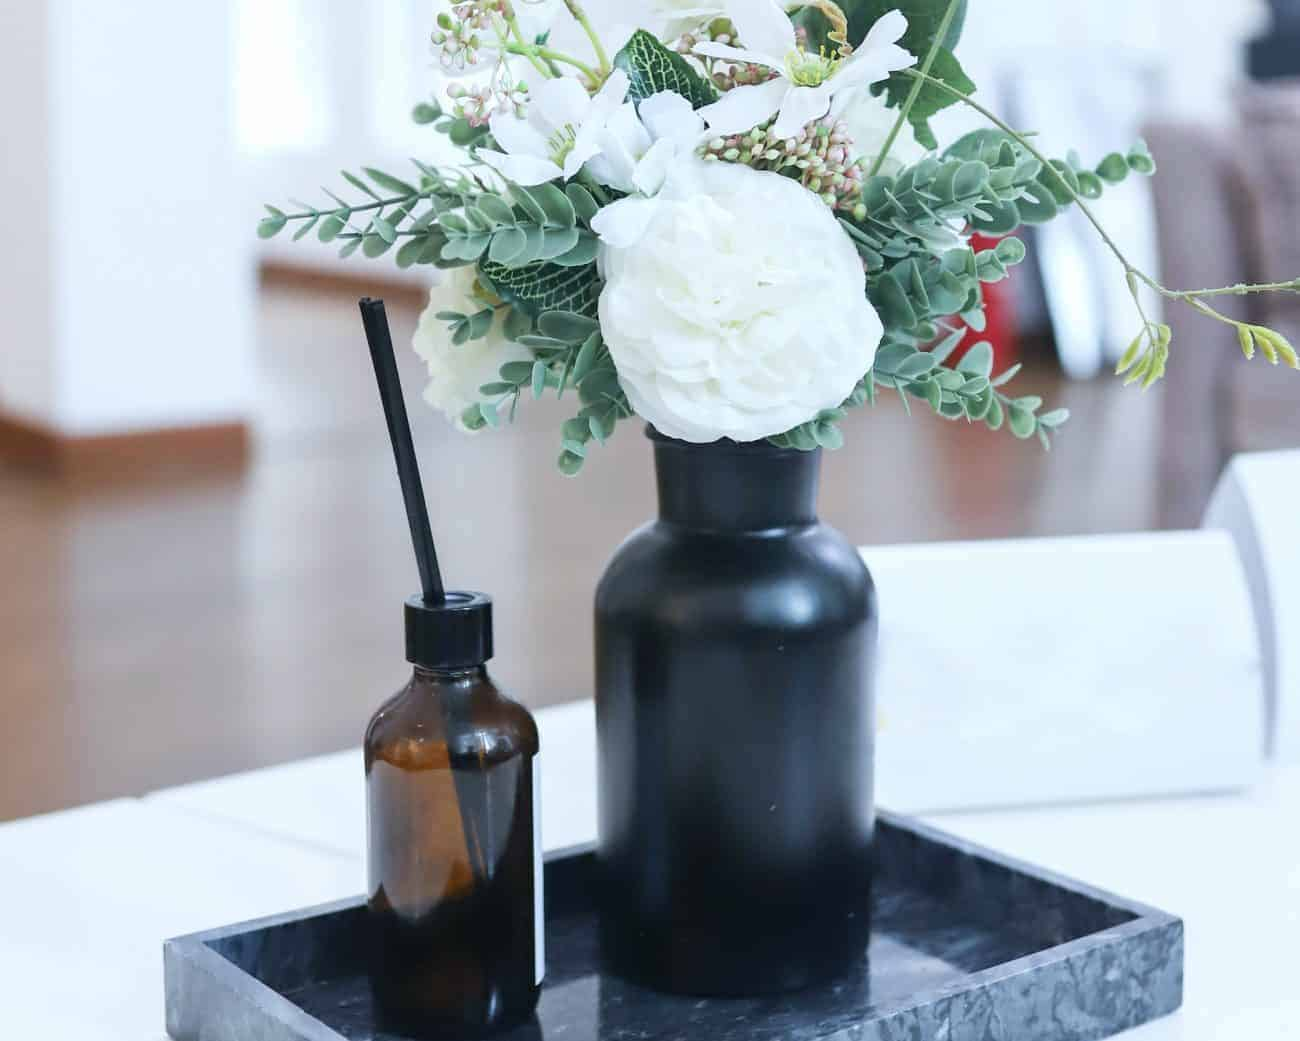 How to Choose the Best Table Vase